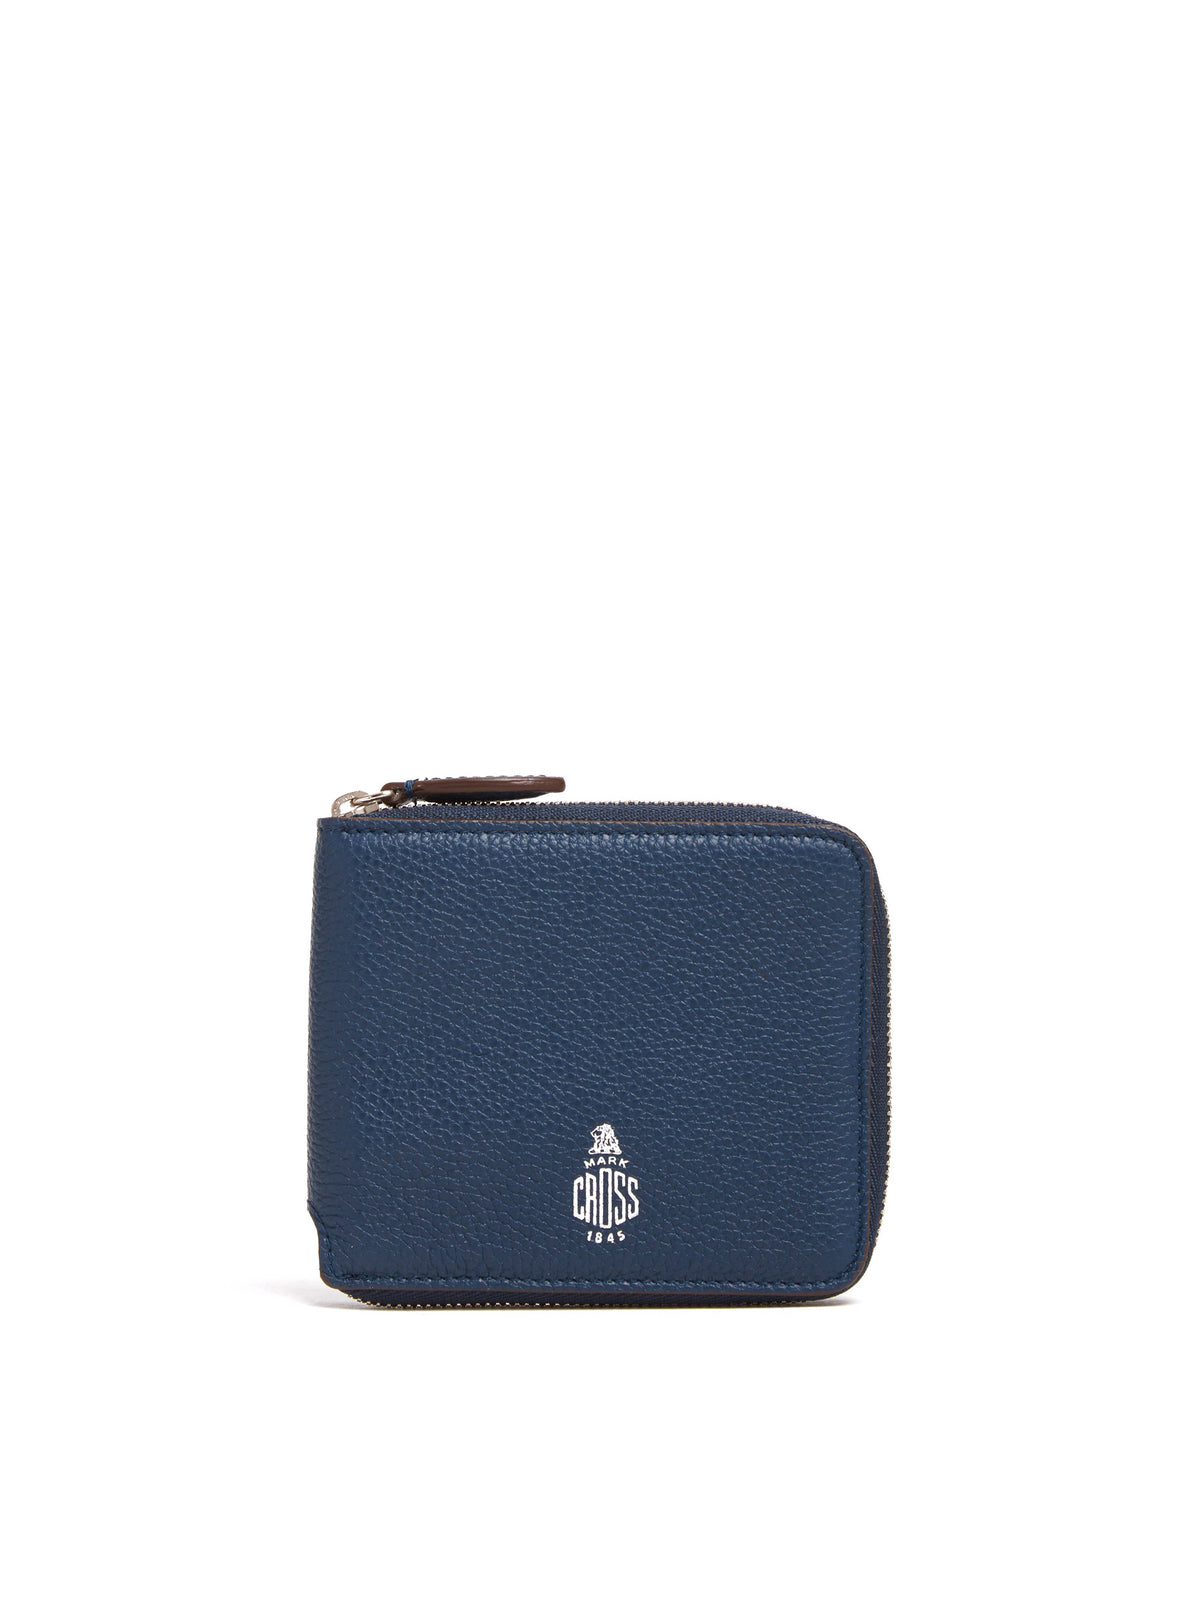 Mark Cross Bi-Fold Leather Zip Wallet Tumbled Grain Navy Front